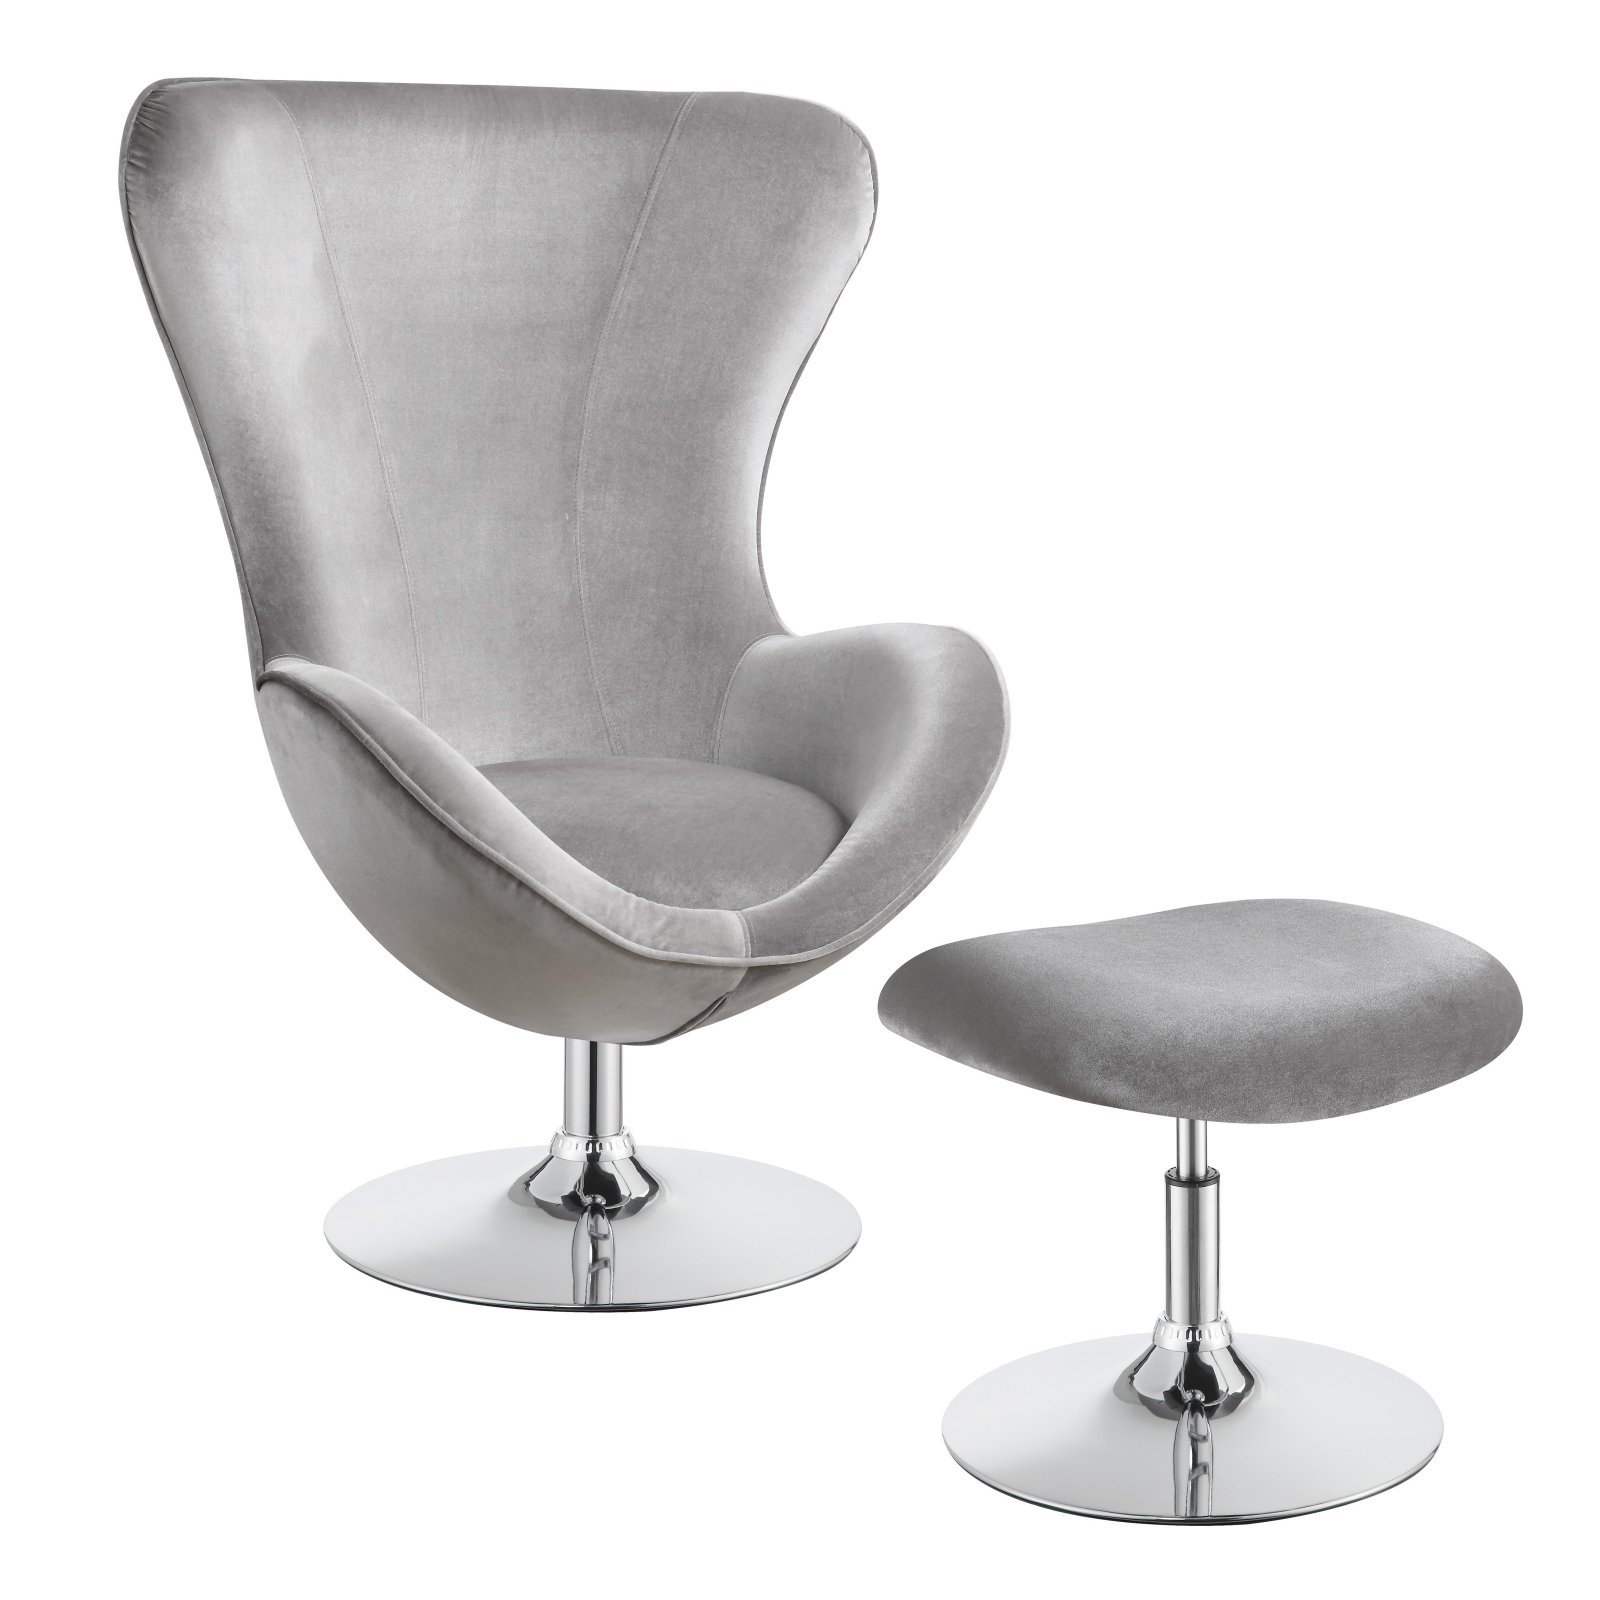 Amazing Coaster Furniture Egg Accent Chair With Ottoman Gray In 2019 Machost Co Dining Chair Design Ideas Machostcouk